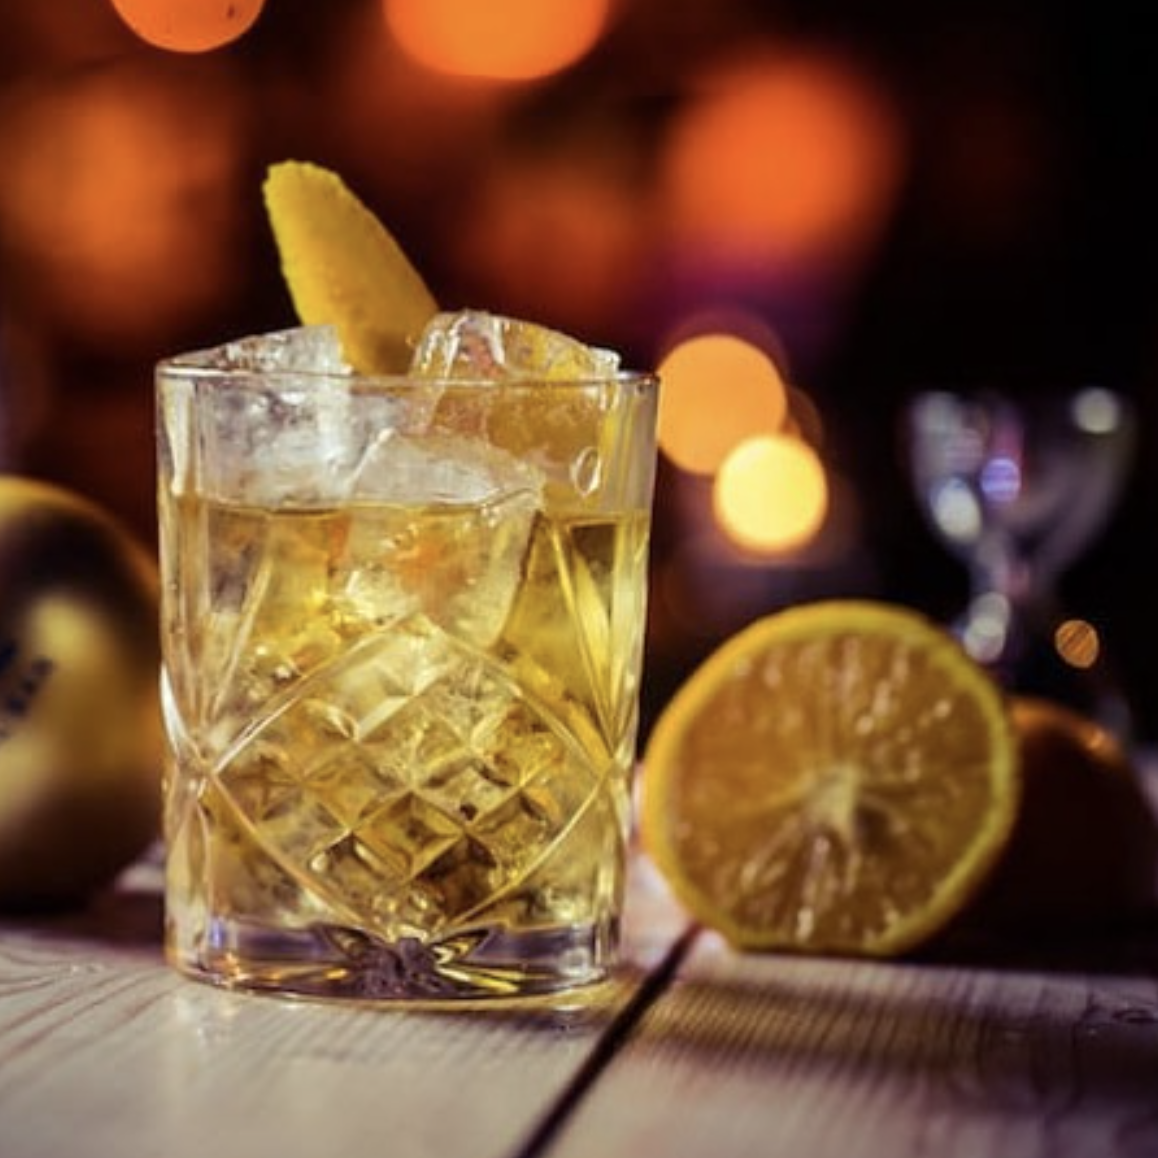 An image of a cocktail